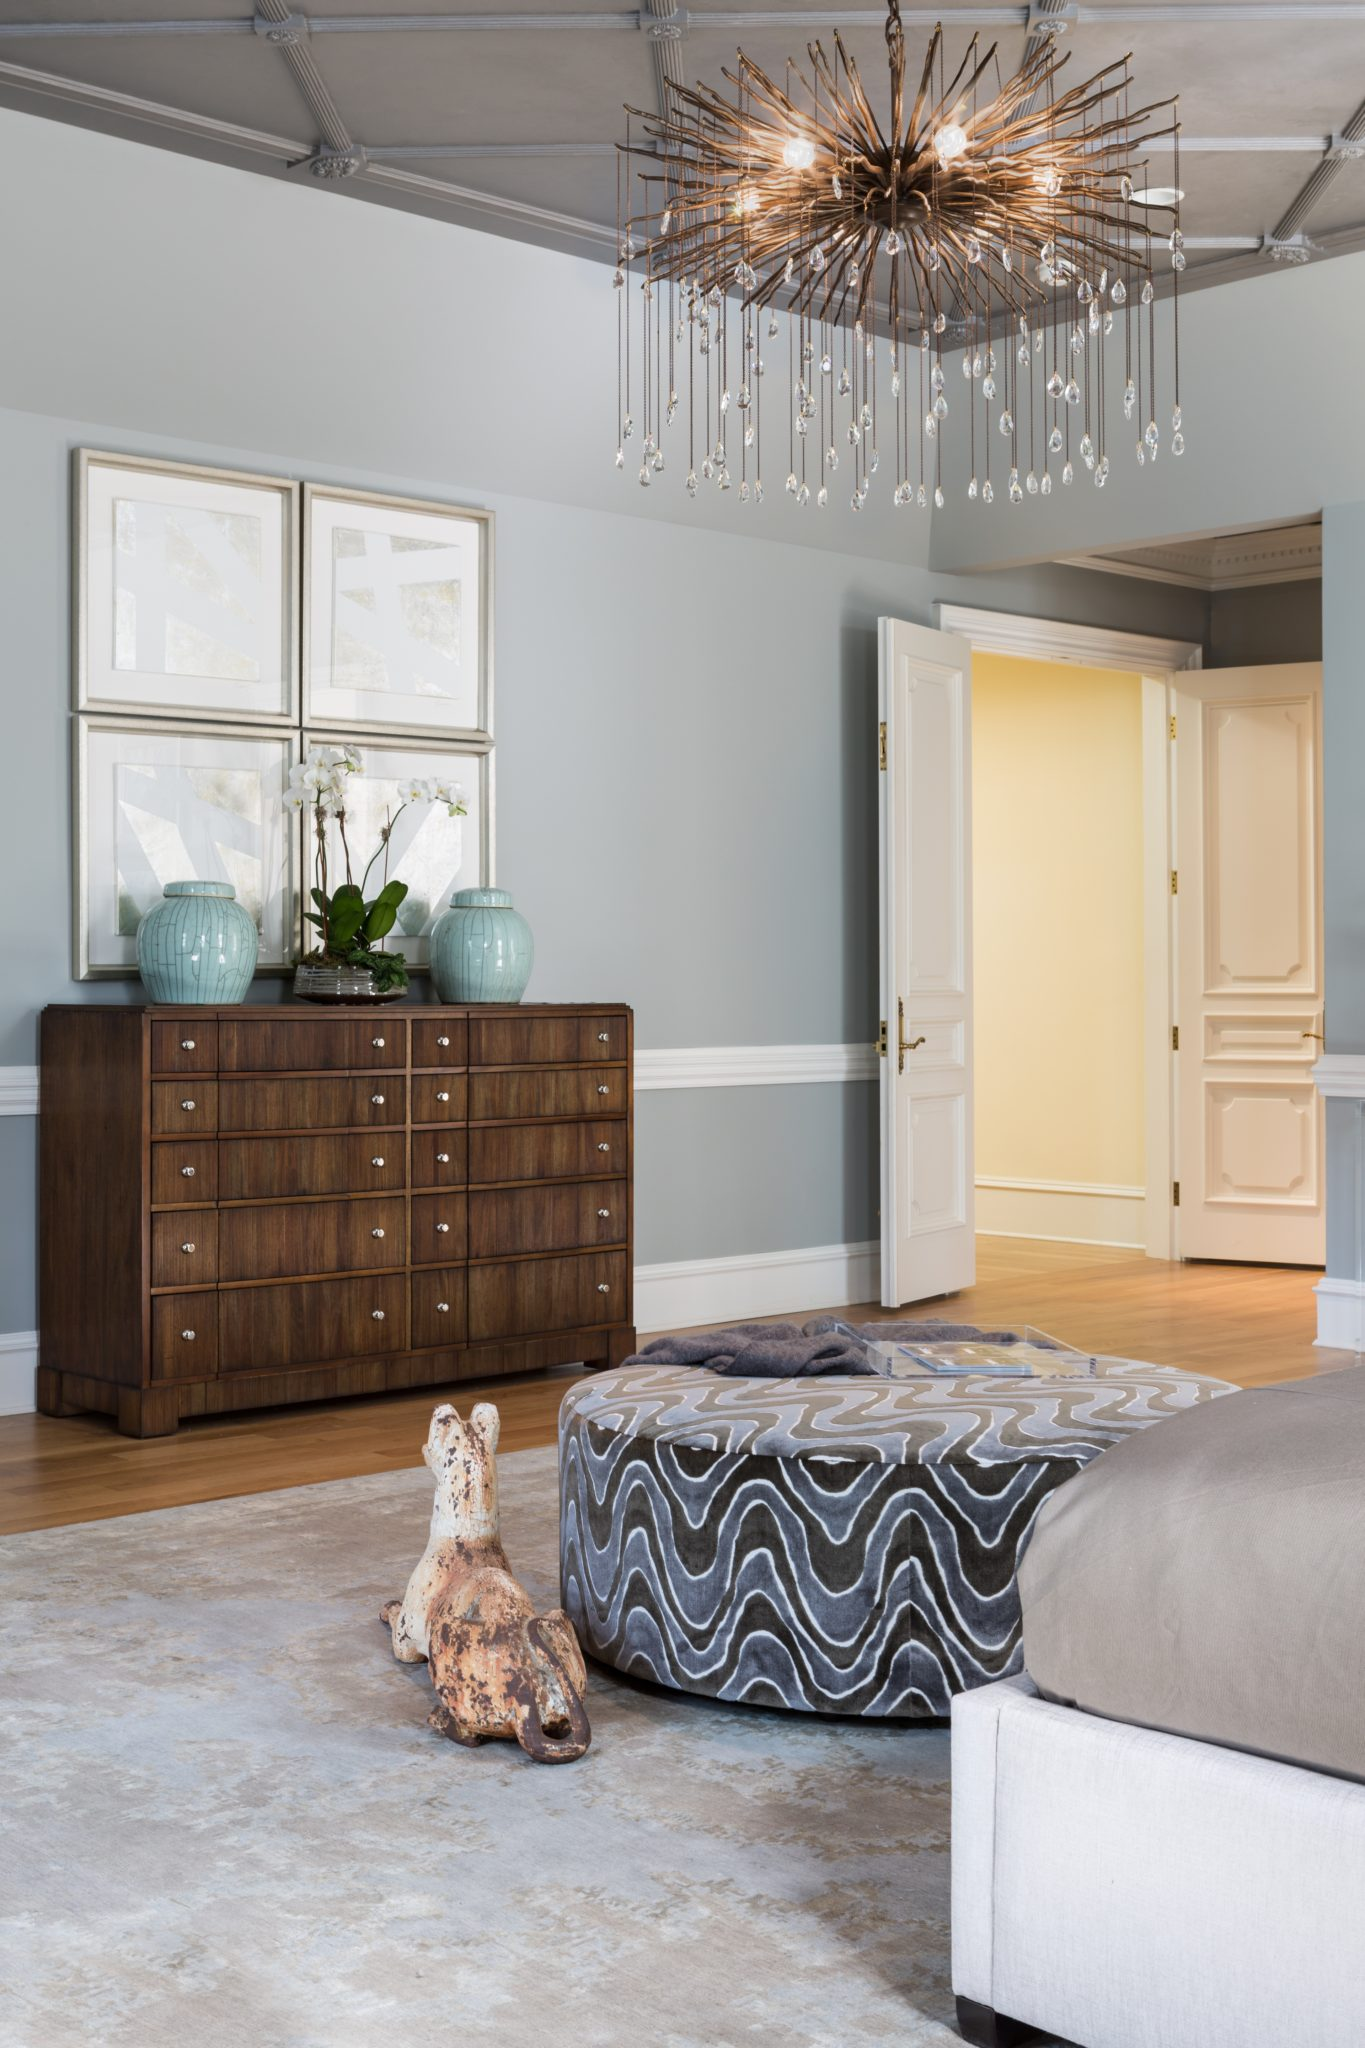 Master suite anchored by a swirling ottoman + chandelier on a metallic ceiling by Interiors by Design